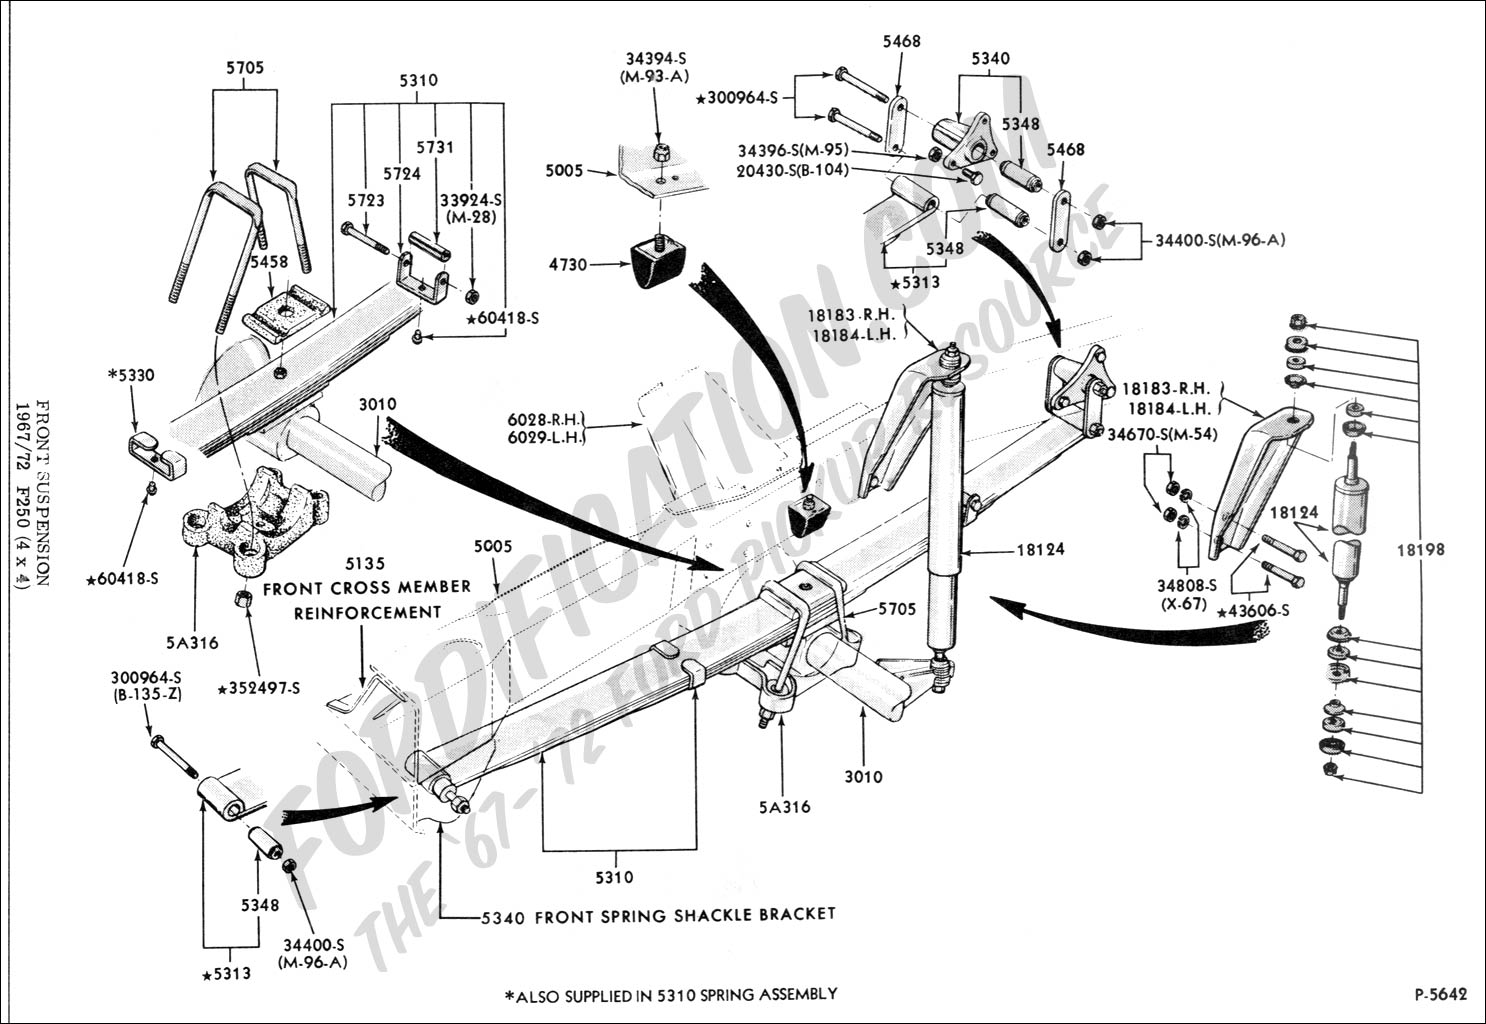 1968 f100 wiring diagram headphone jack ford truck technical drawings and schematics - section a front/rear axle assemblies ...